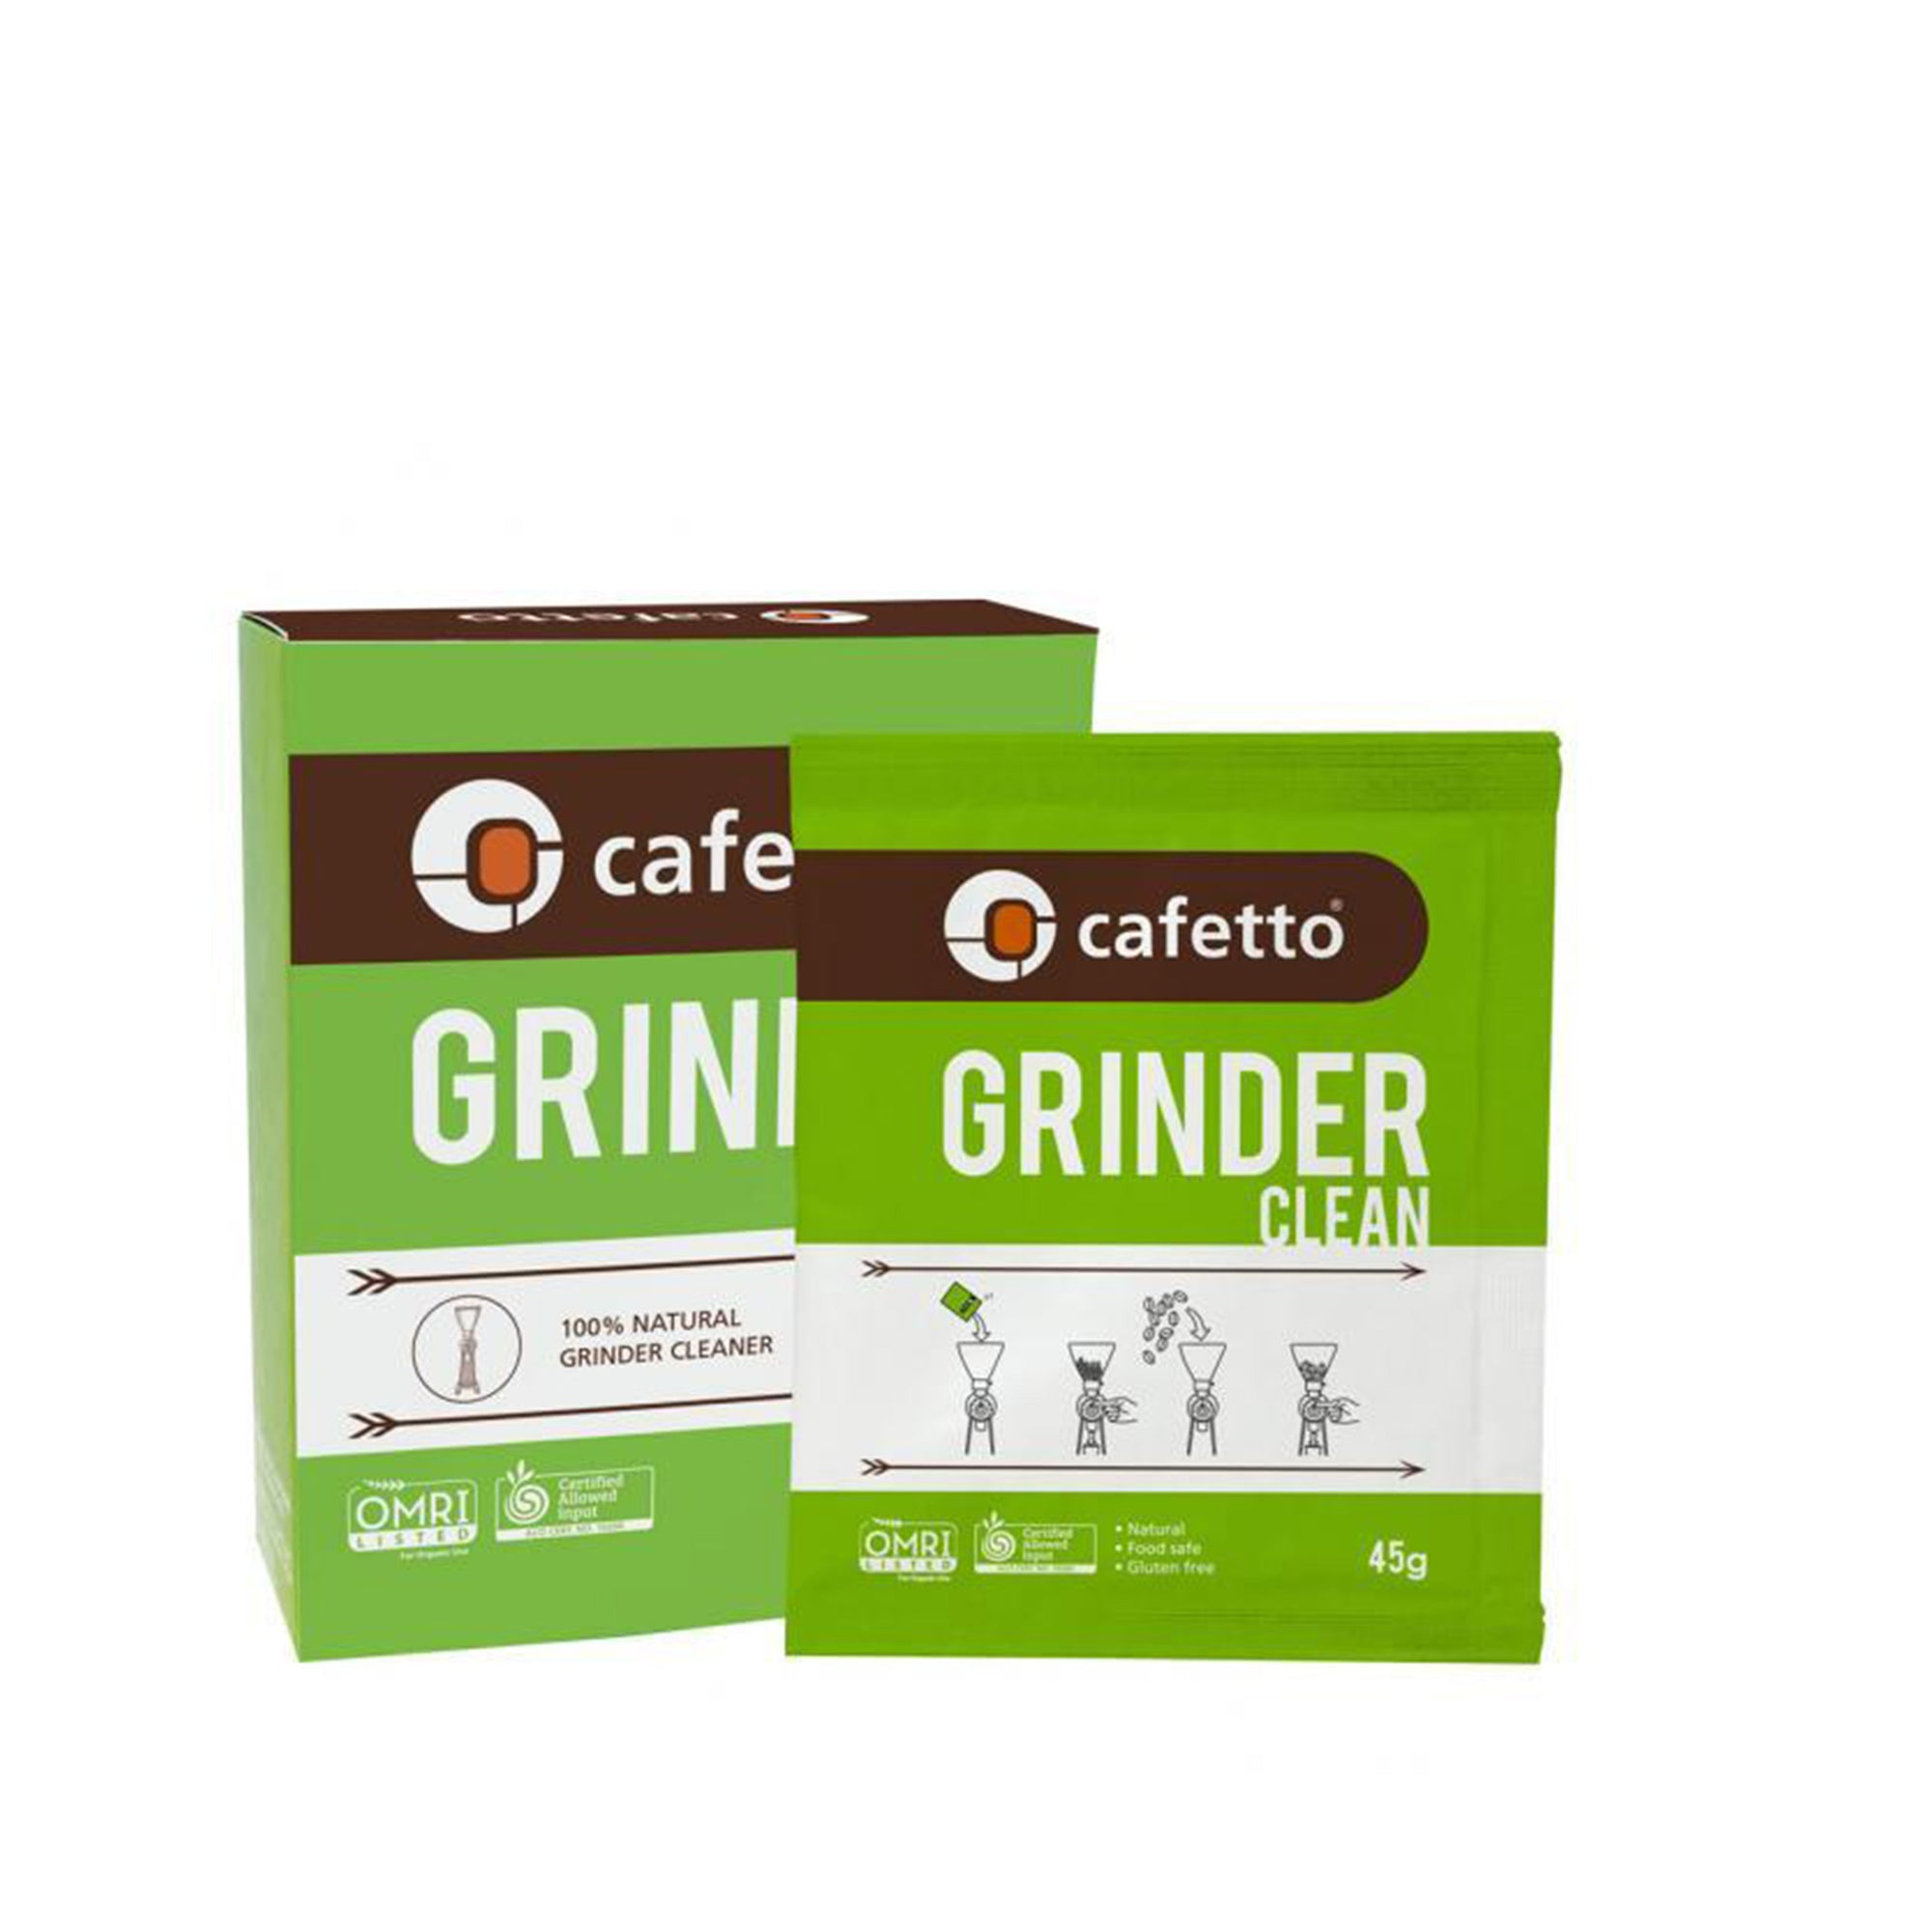 Grinder Cleaner Sachets 3x45g - Cafetto - Espresso Gear